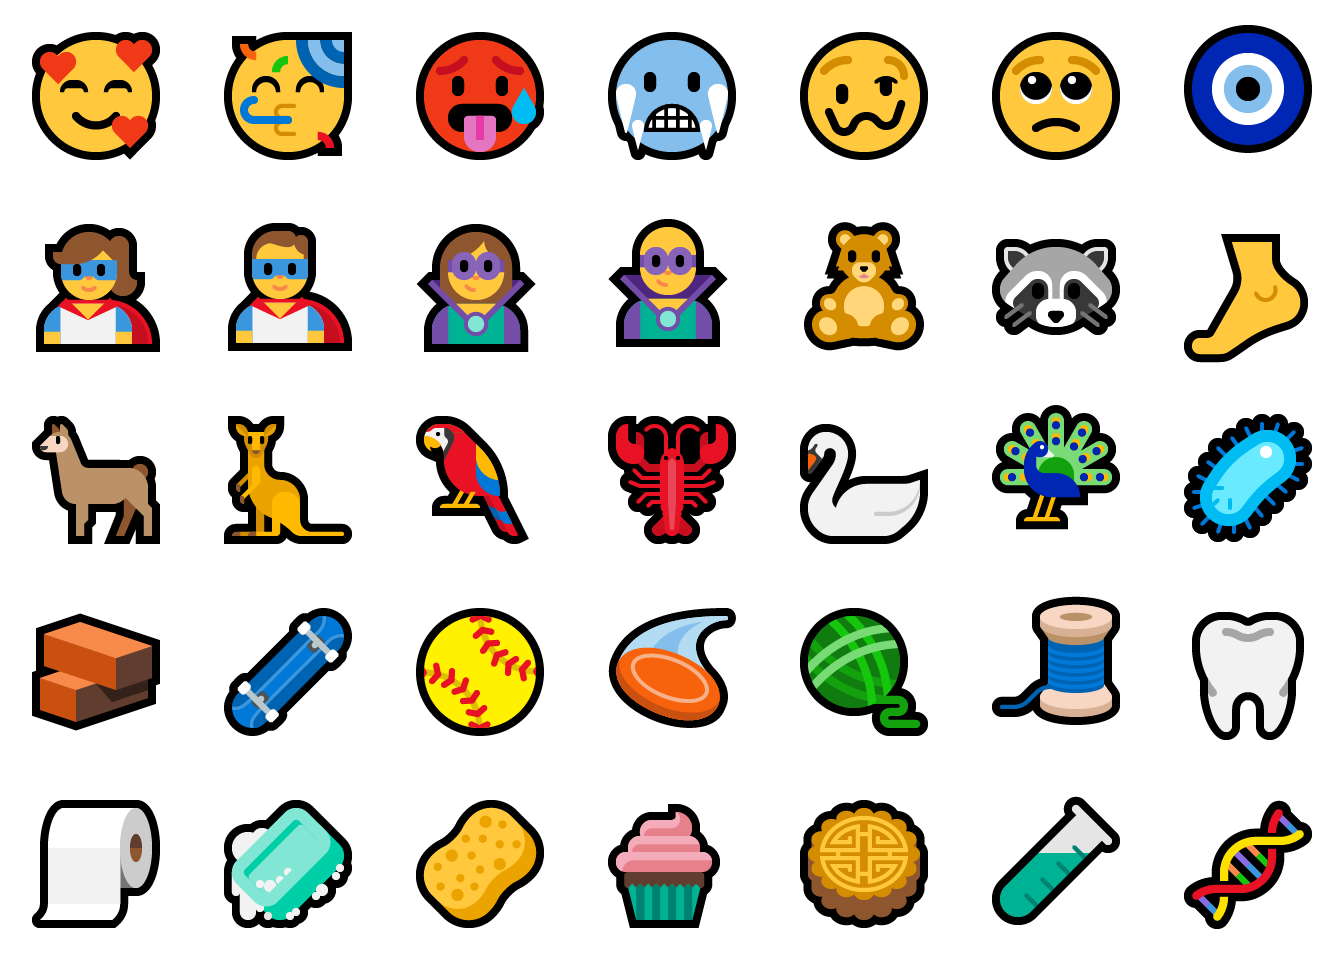 157 new emoji with Unicode 11 in Windows 10 (1809)